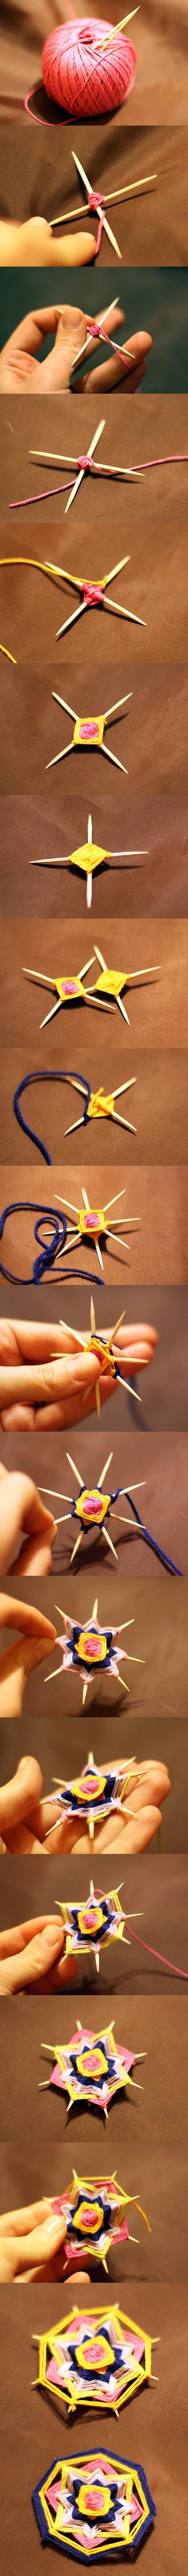 DIY Weave a Mandala Brooch with Toothpicks | iCreativeIdeas.com LIKE Us on Facebook ==> https://www.facebook.com/icreativeideas